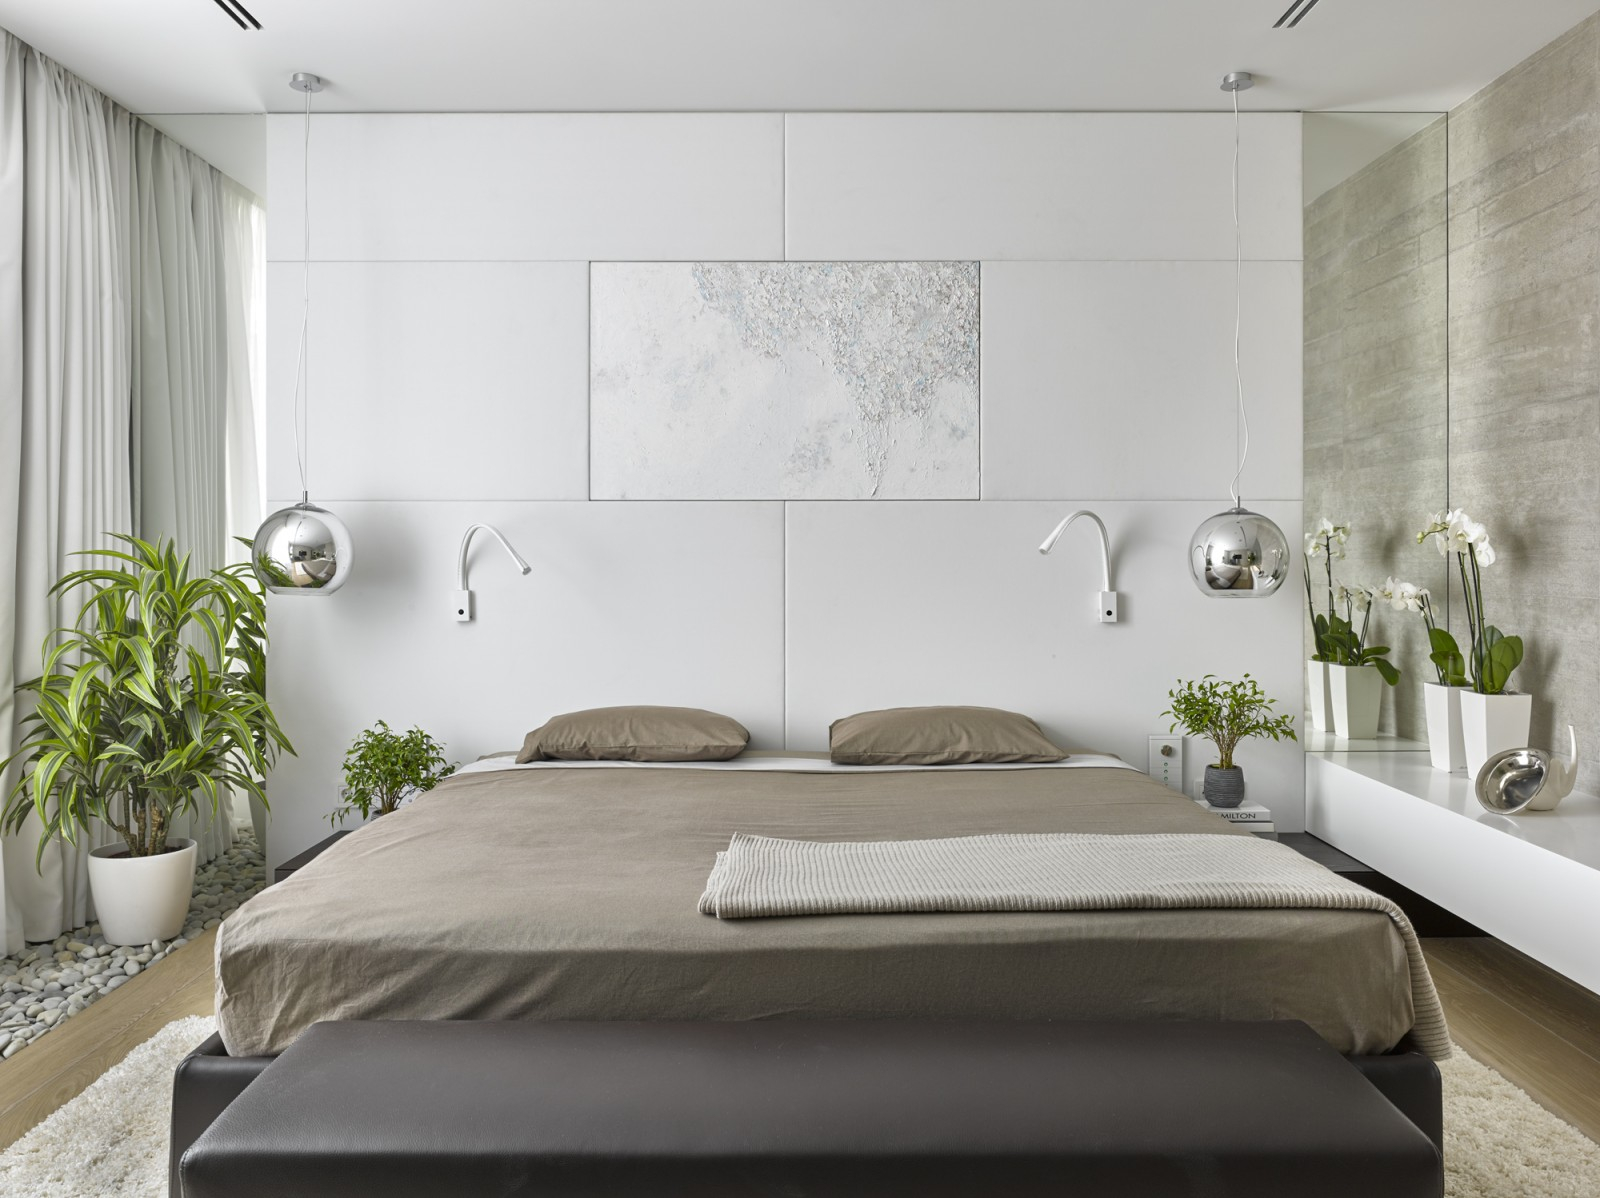 20 Best Small Modern Bedroom Ideas Architecture Beast throughout 15 Some of the Coolest Ways How to Craft Bedrooms Modern